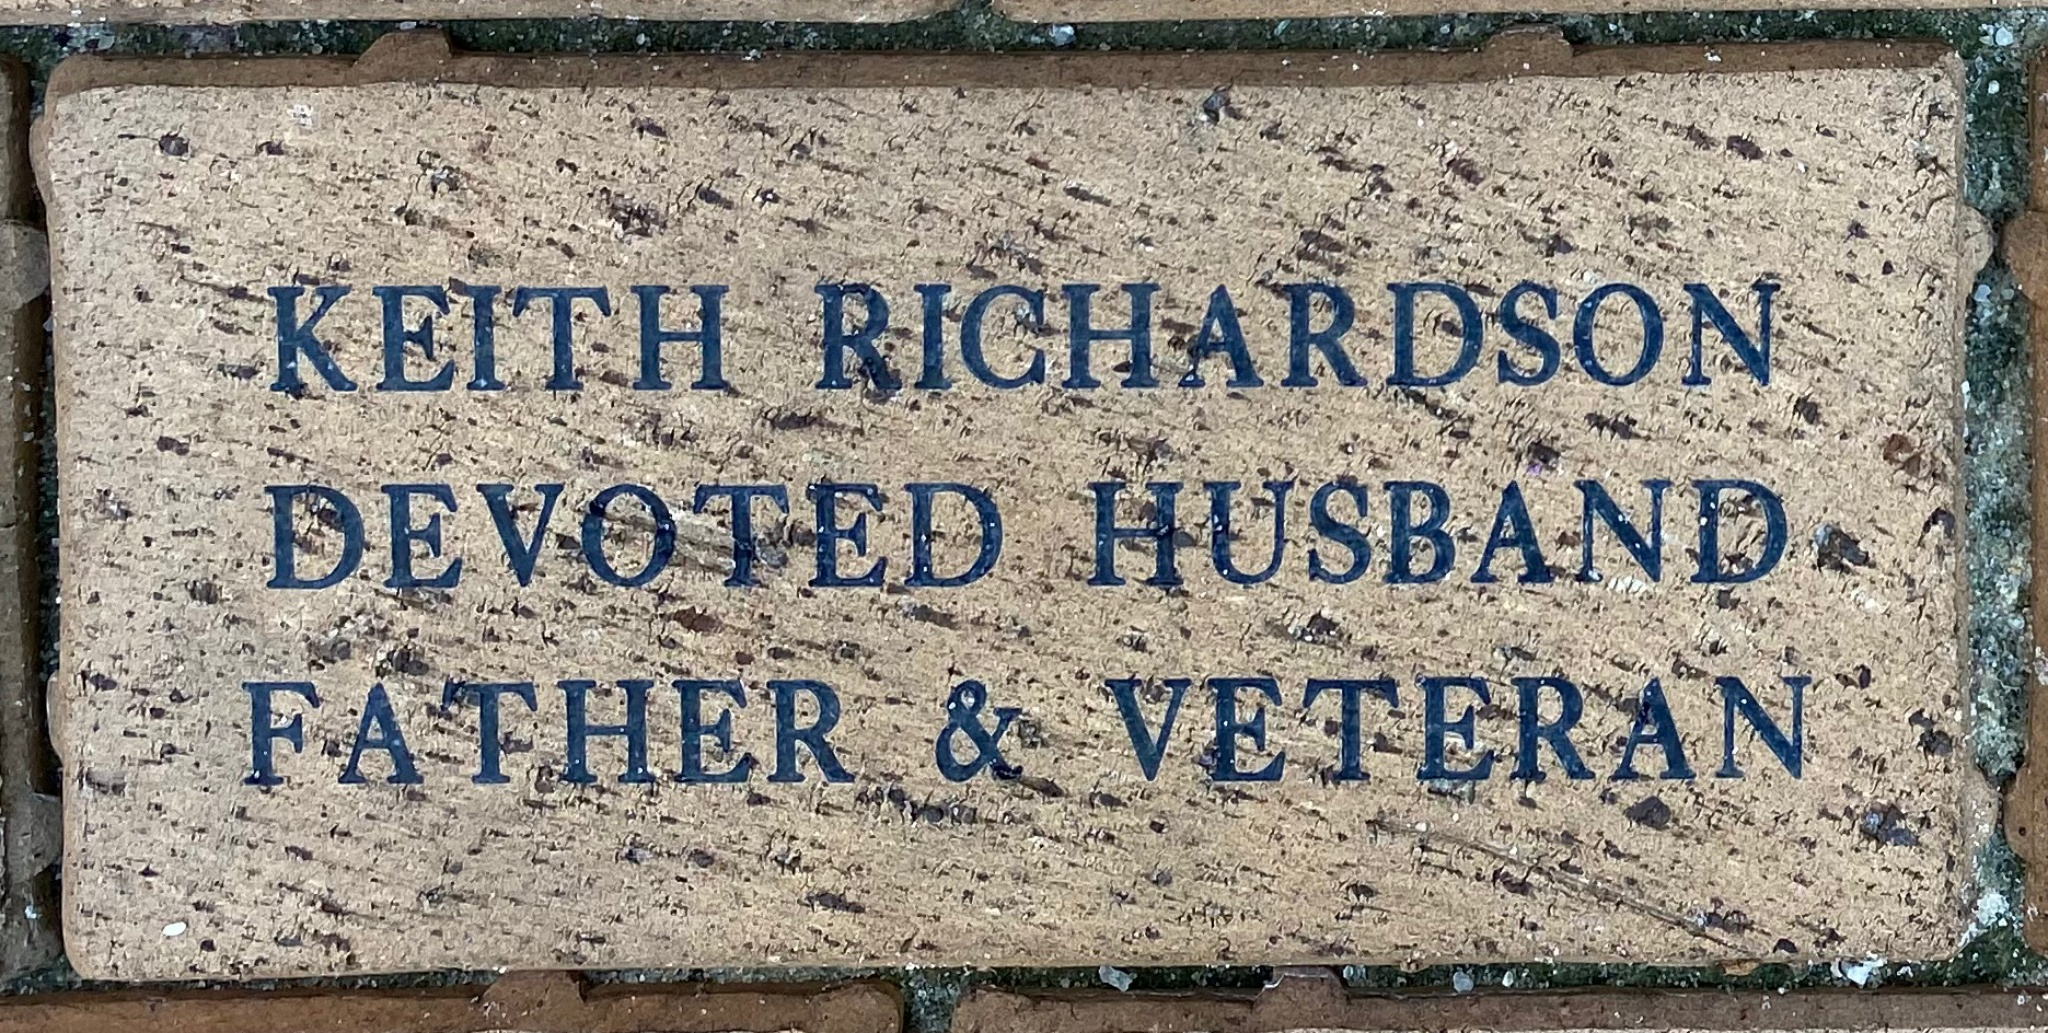 KEITH RICHARDSON DEVOTED HUSBAND FATHER & VETERAN